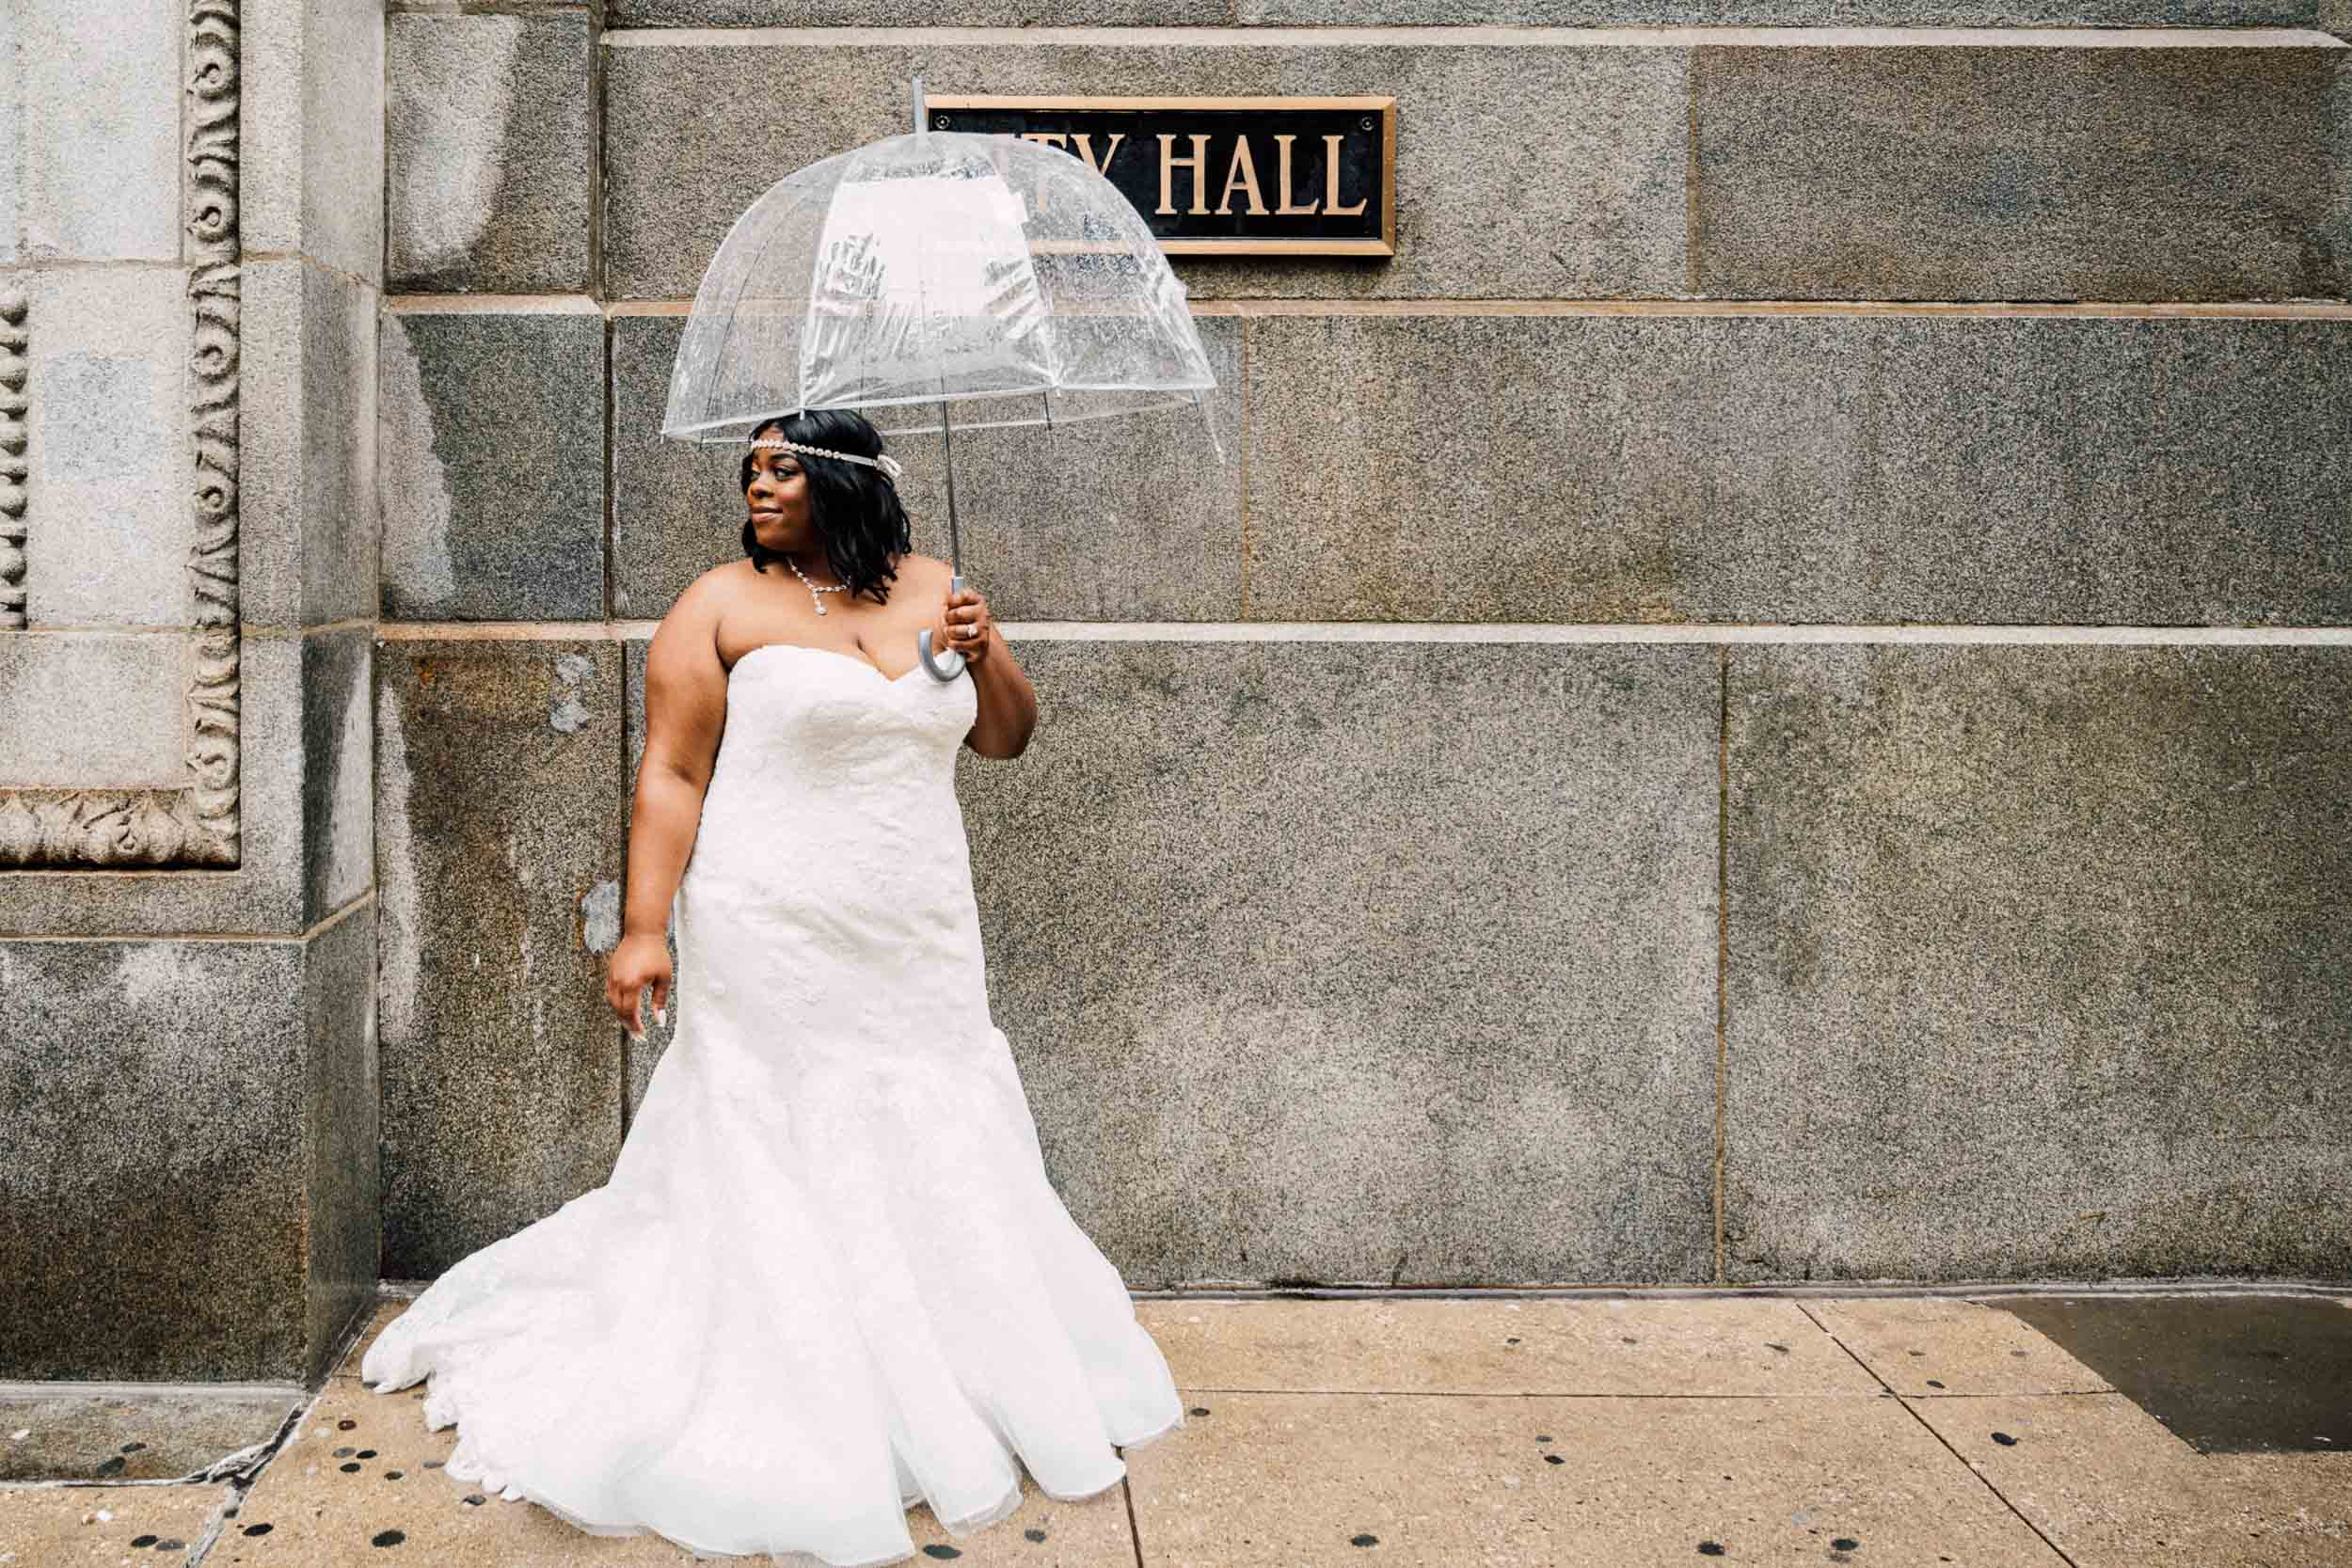 Chicago City Hall Elopement shot by Captured by Bianca 2019